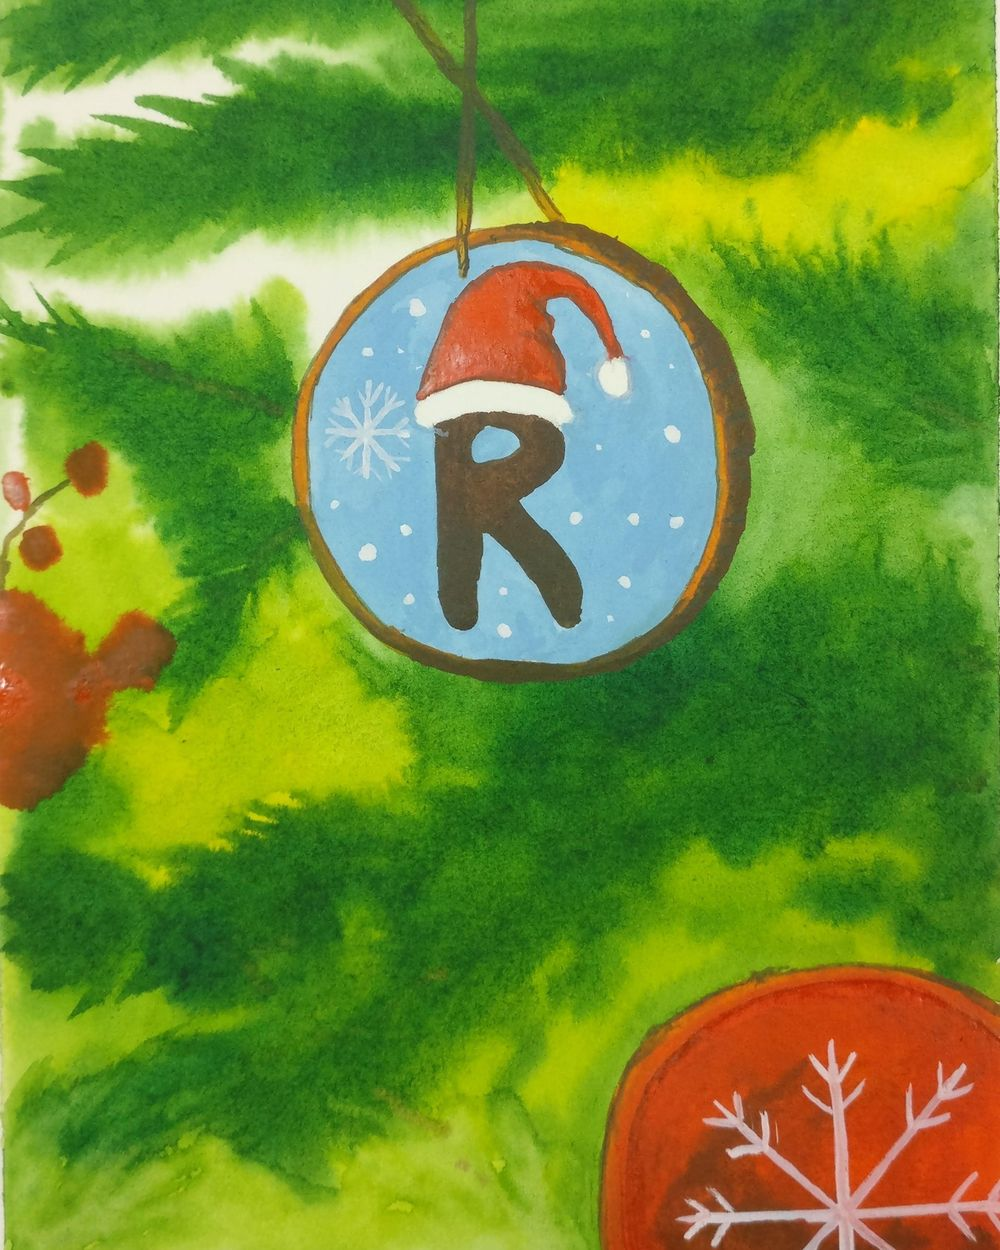 Christmas with watercolors - image 4 - student project